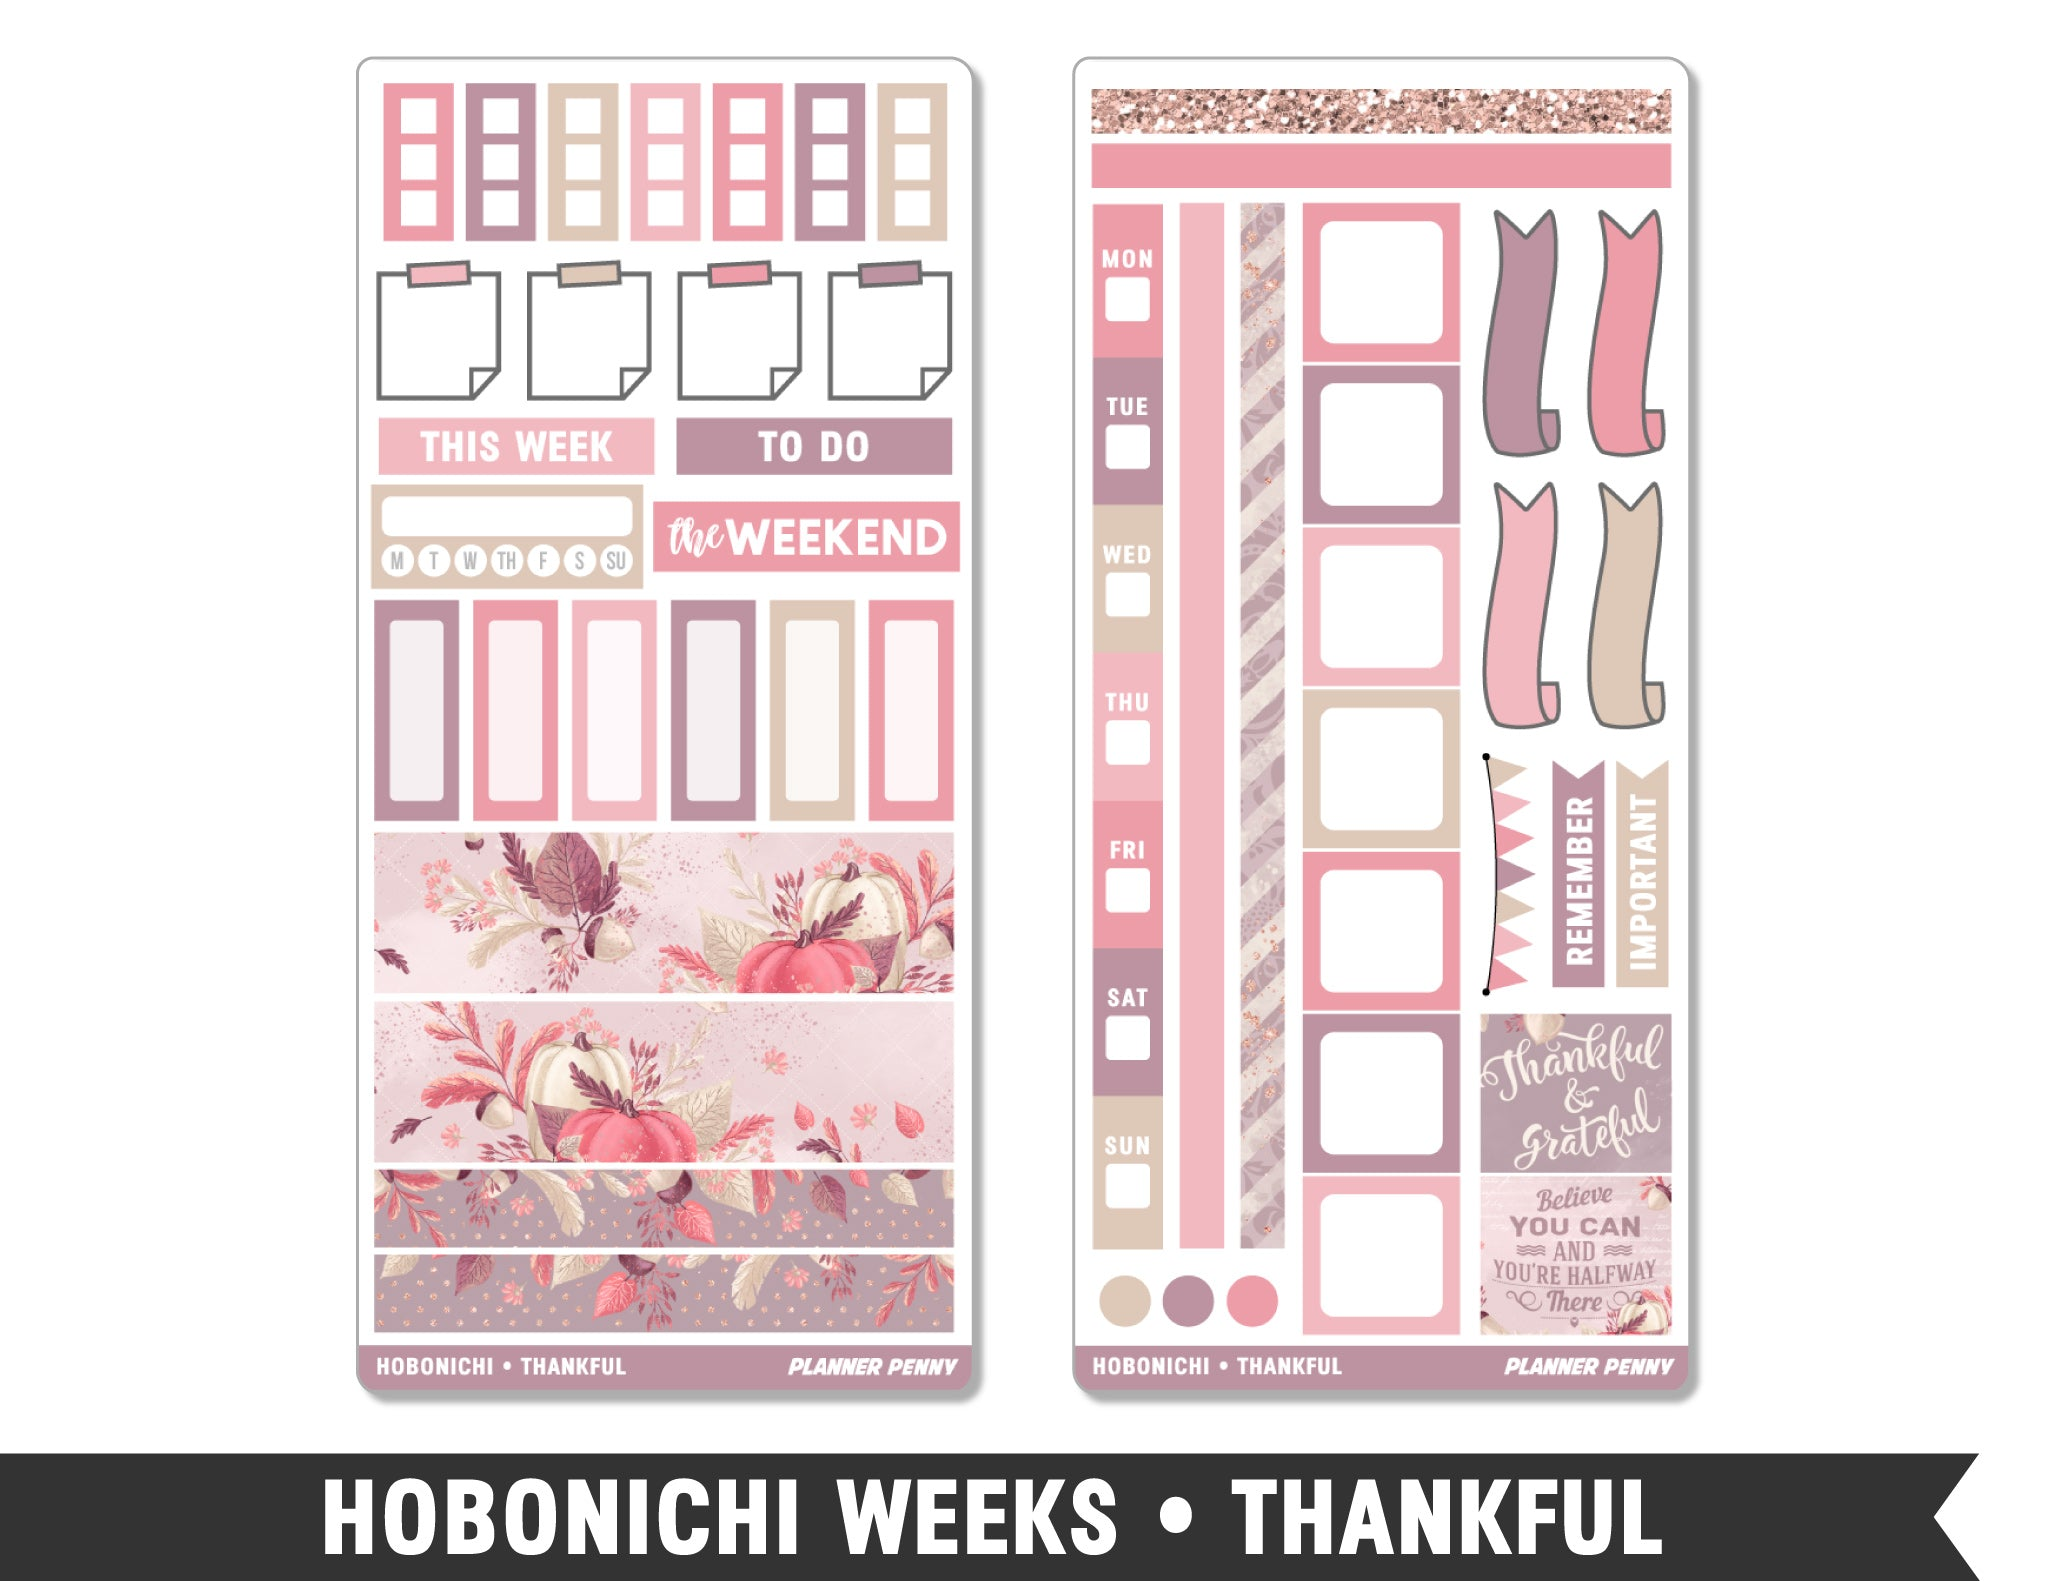 Hobonichi Weeks • Thankful • Weekly Spread Planner Stickers - Planner Penny